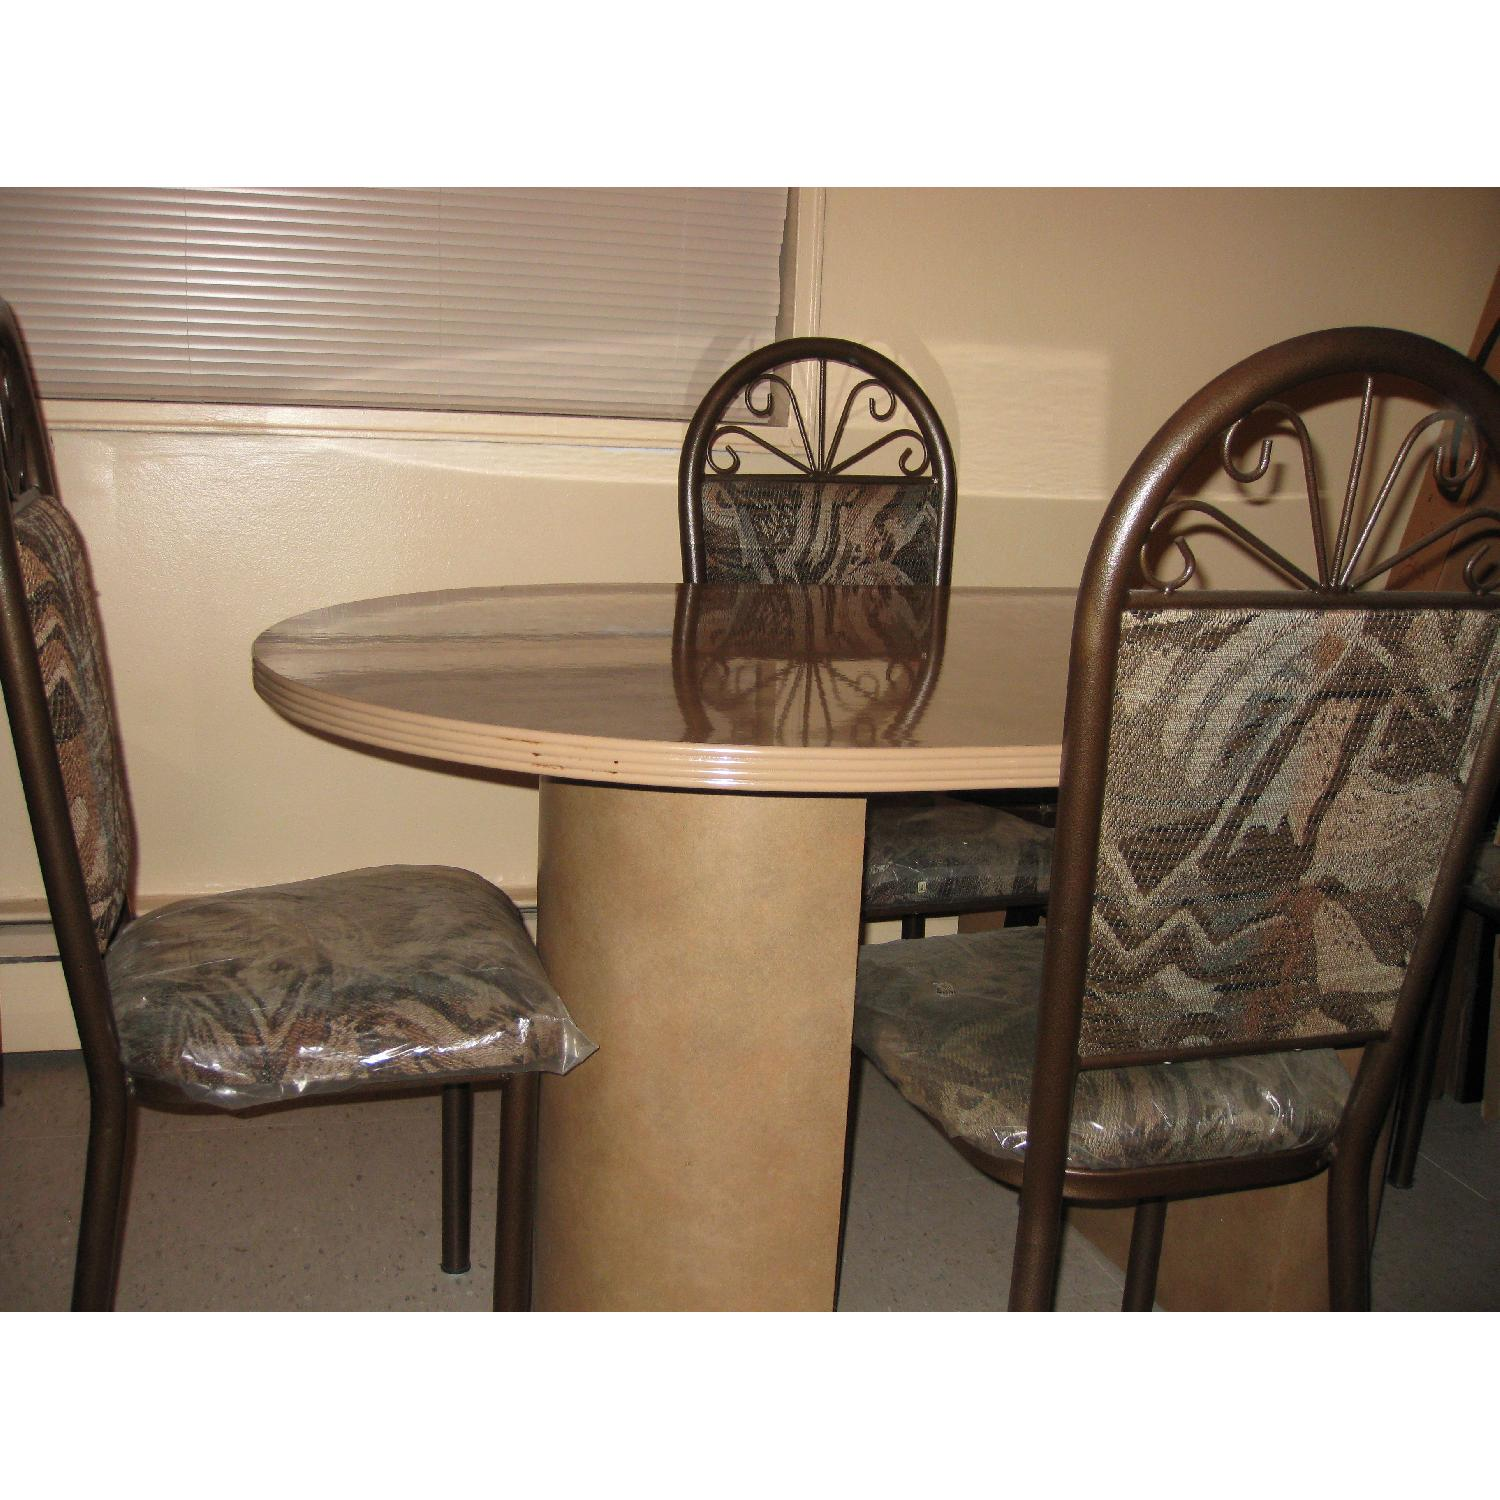 Ethan Allen Granite Marble Oval Dining Table in Brownish Tan-2